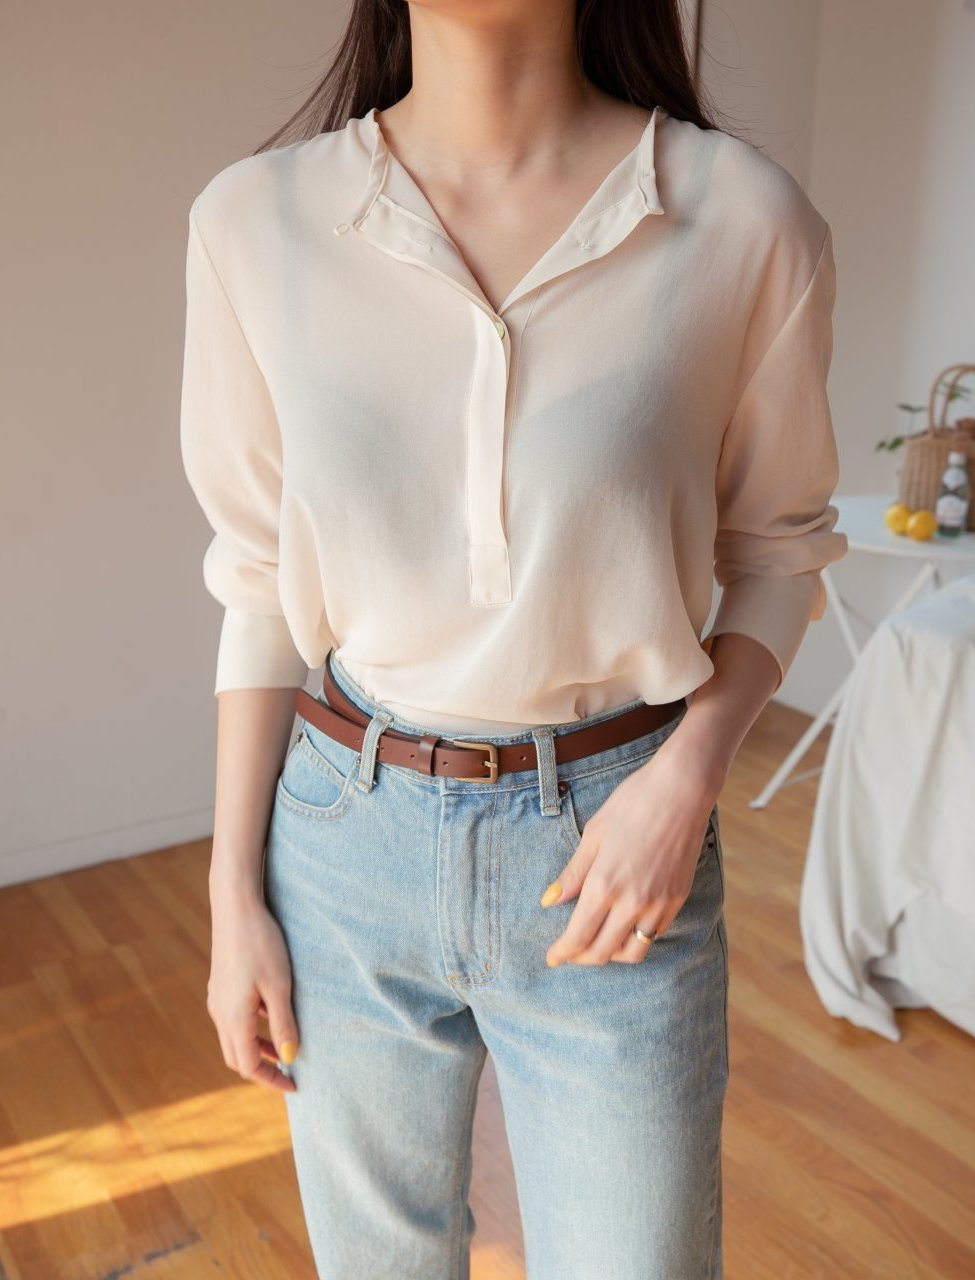 The Clean Blouse Spring Tops 2019 Women's Texas - LOCOLIPS